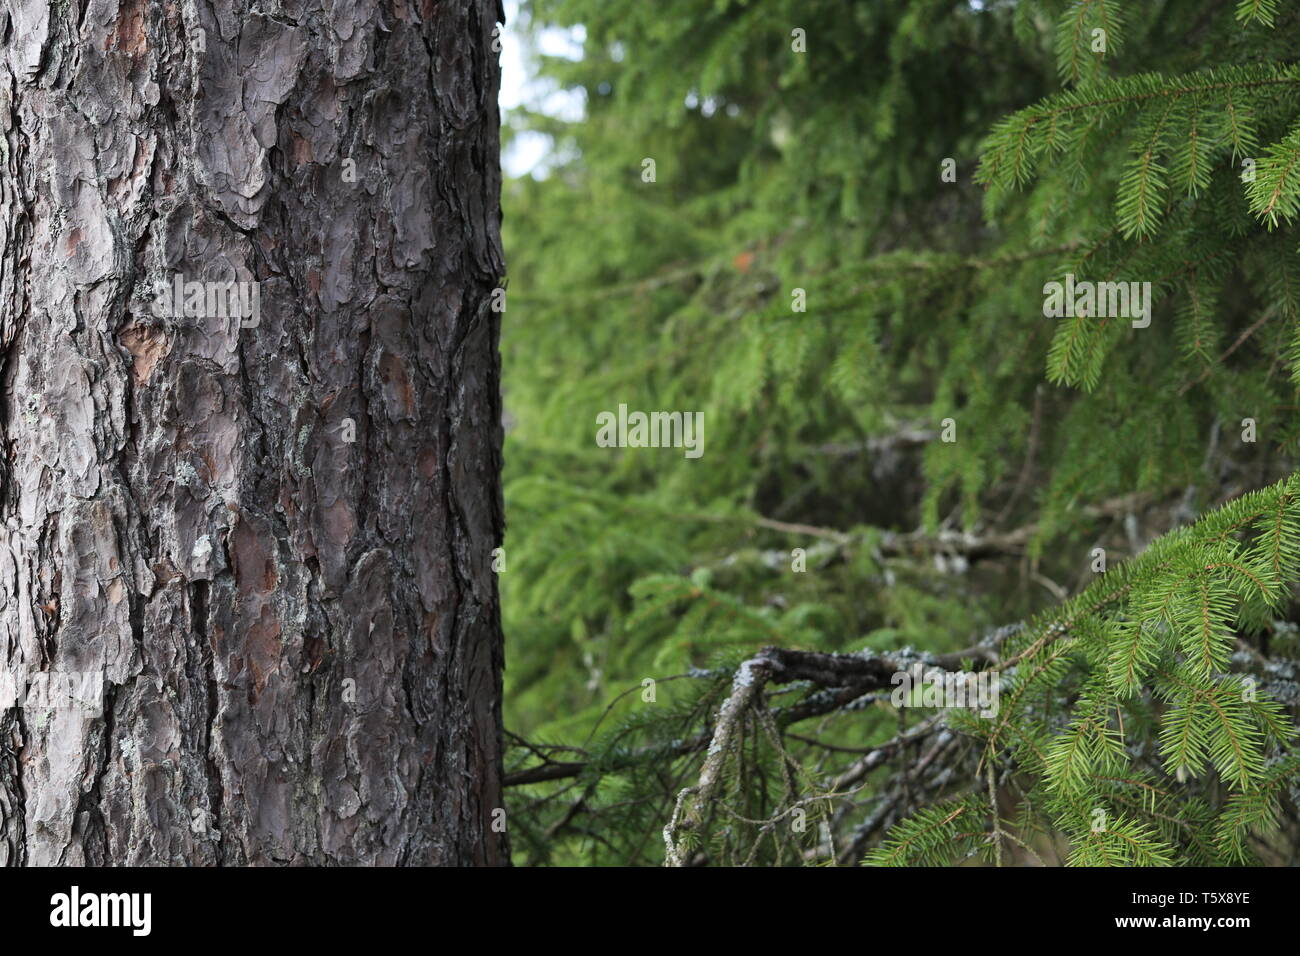 A pine tree trunk with spruces in the background. - Stock Image